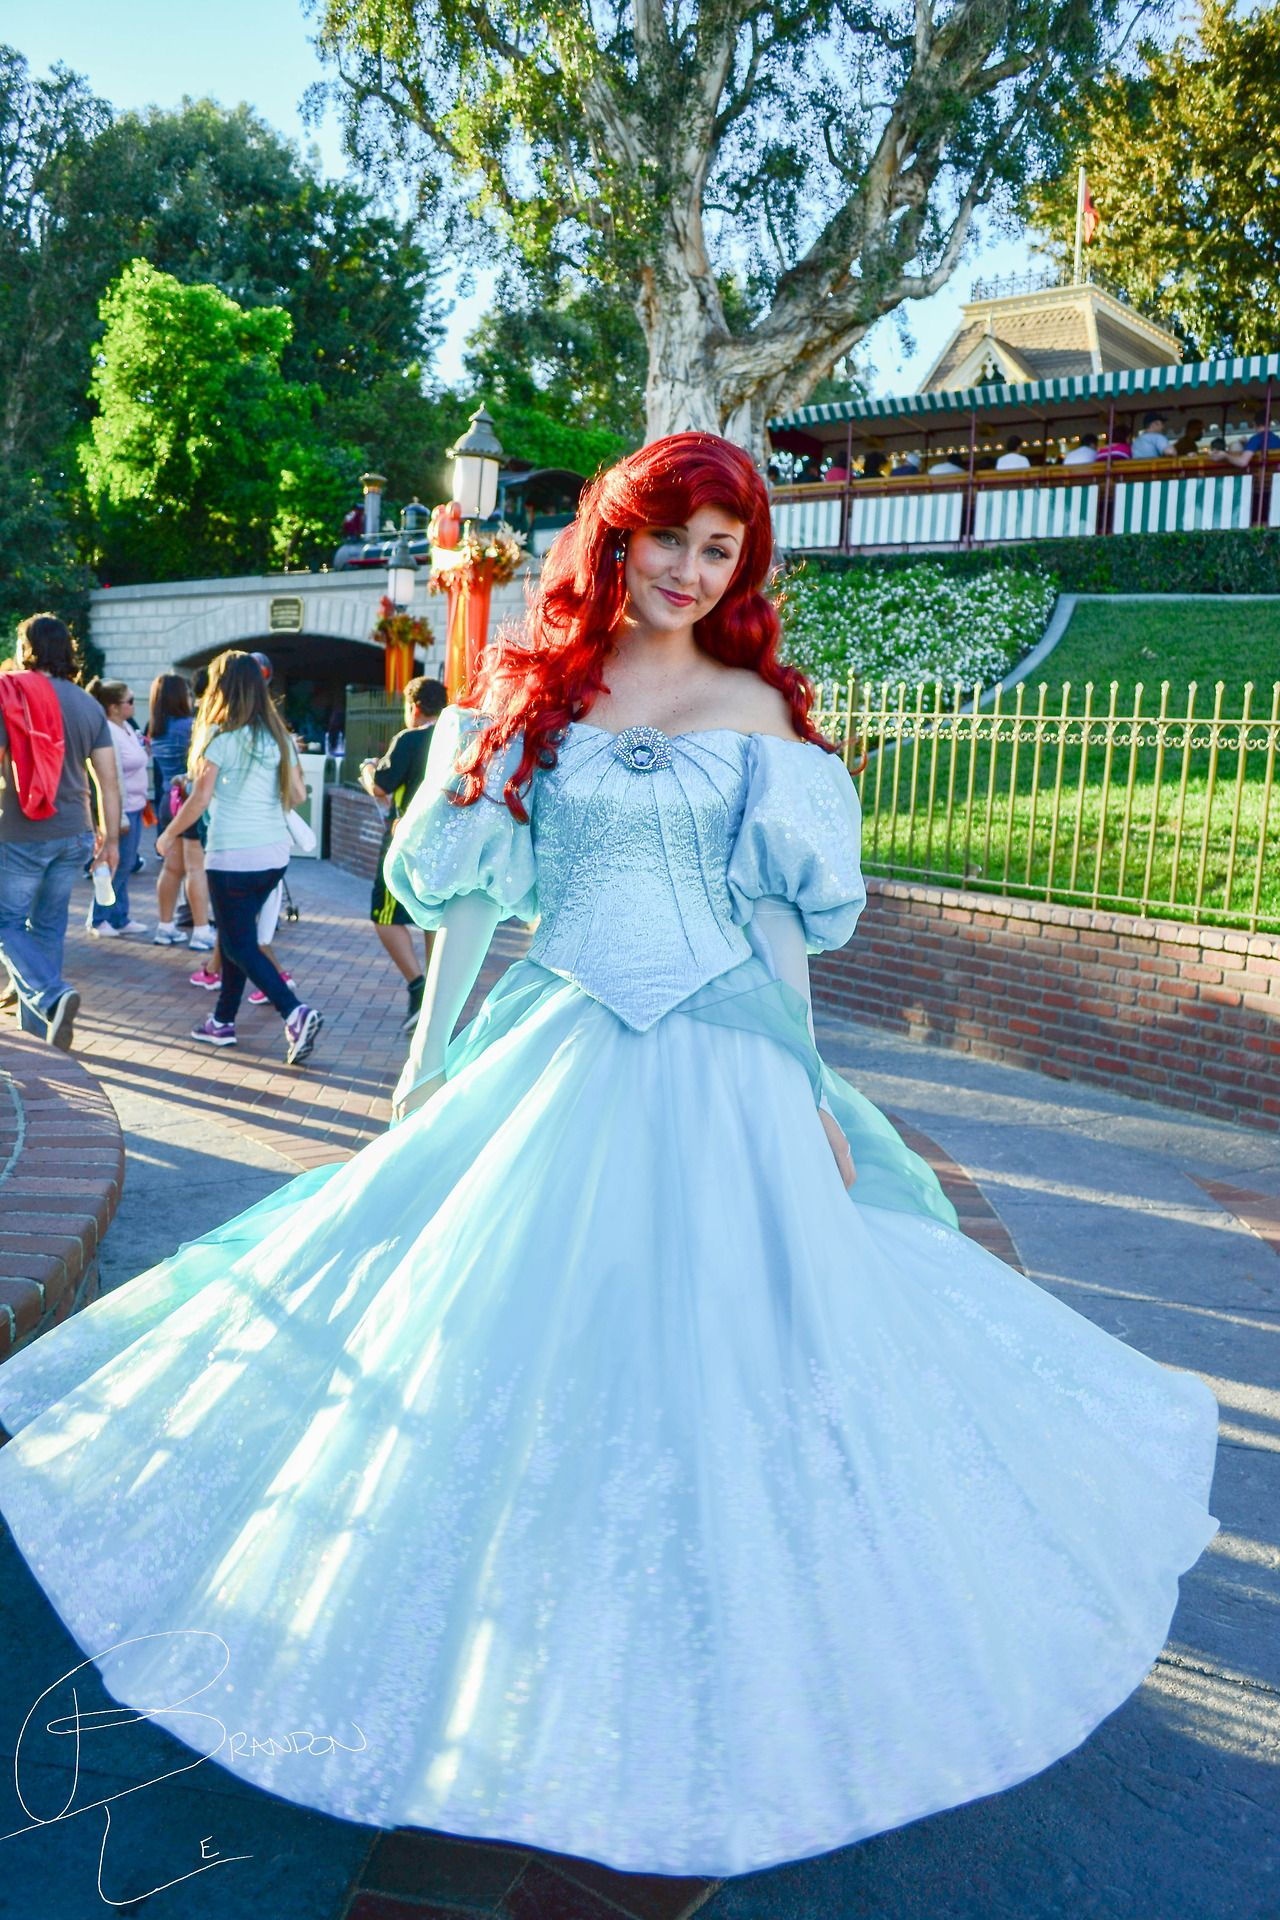 Ariel Face Character Redesign | Disney | Pinterest | Face characters ...